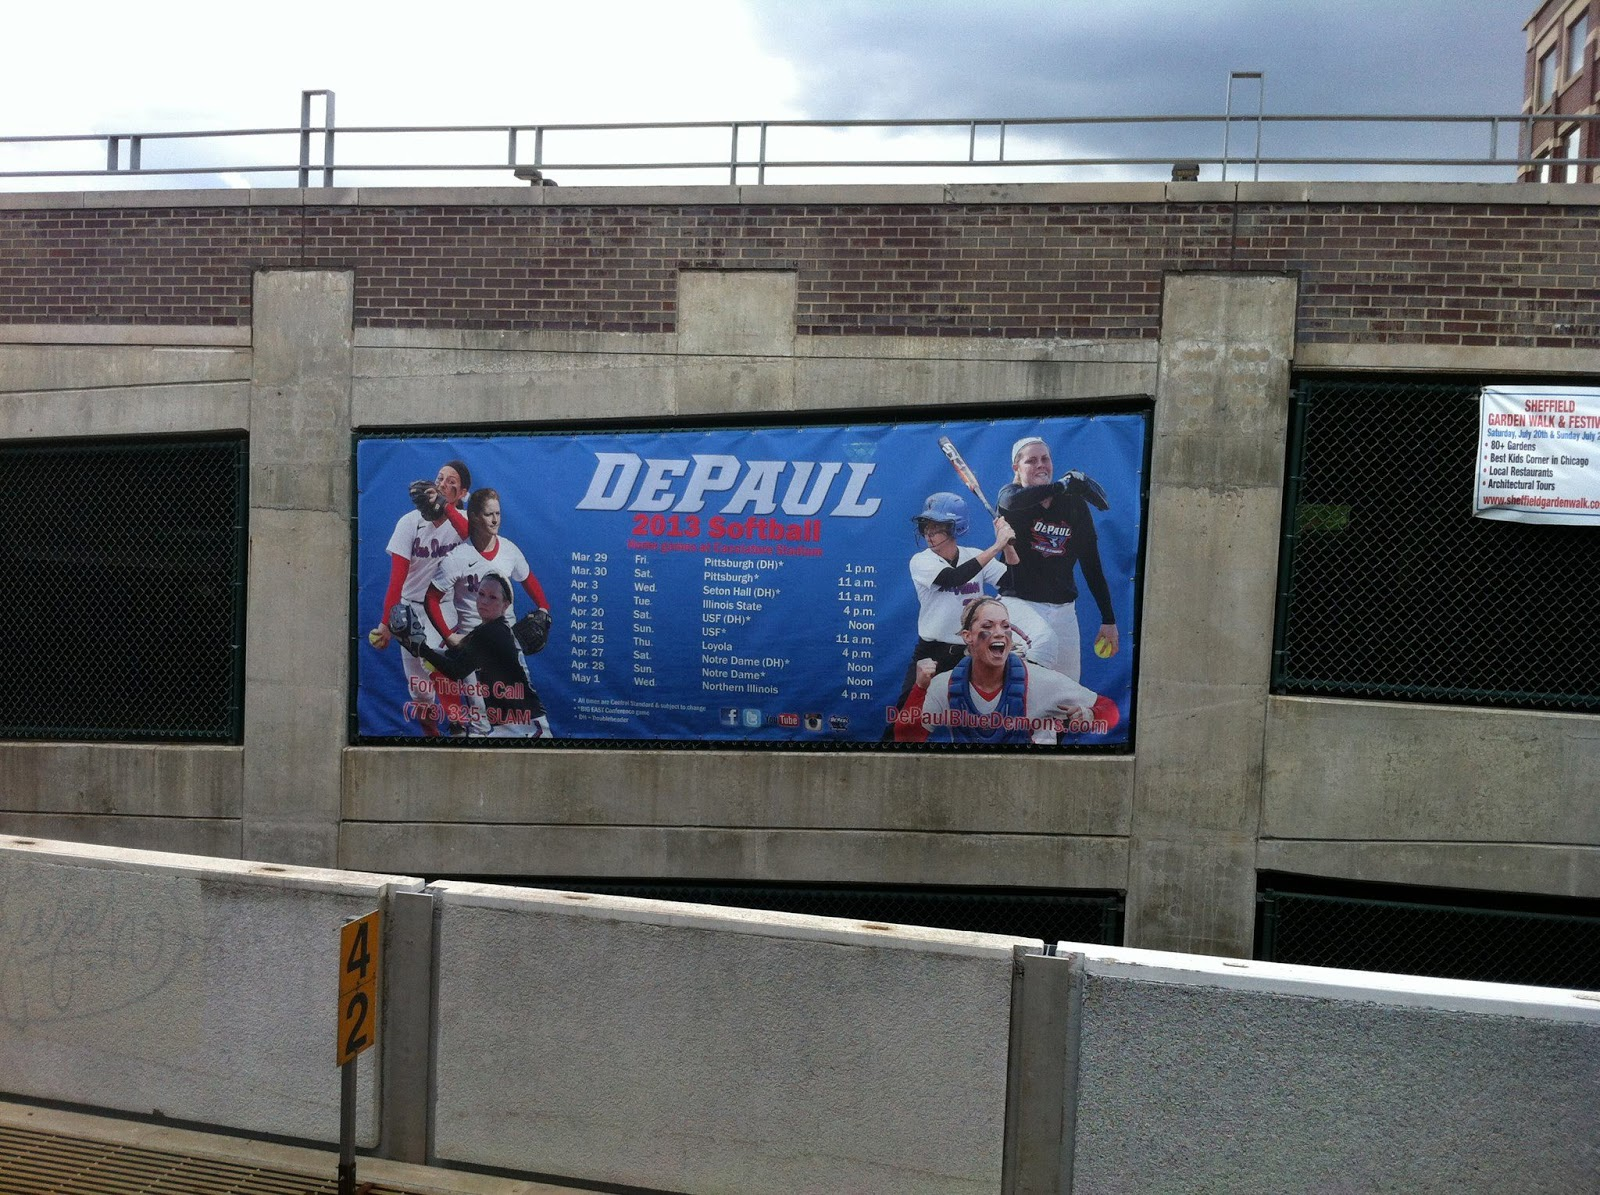 Color printing depaul - Sports Wise Depaul Is Well Known For Their Basketball Programs Men And Women They Do Not Have A Football Program As A Varsity Softball Coach